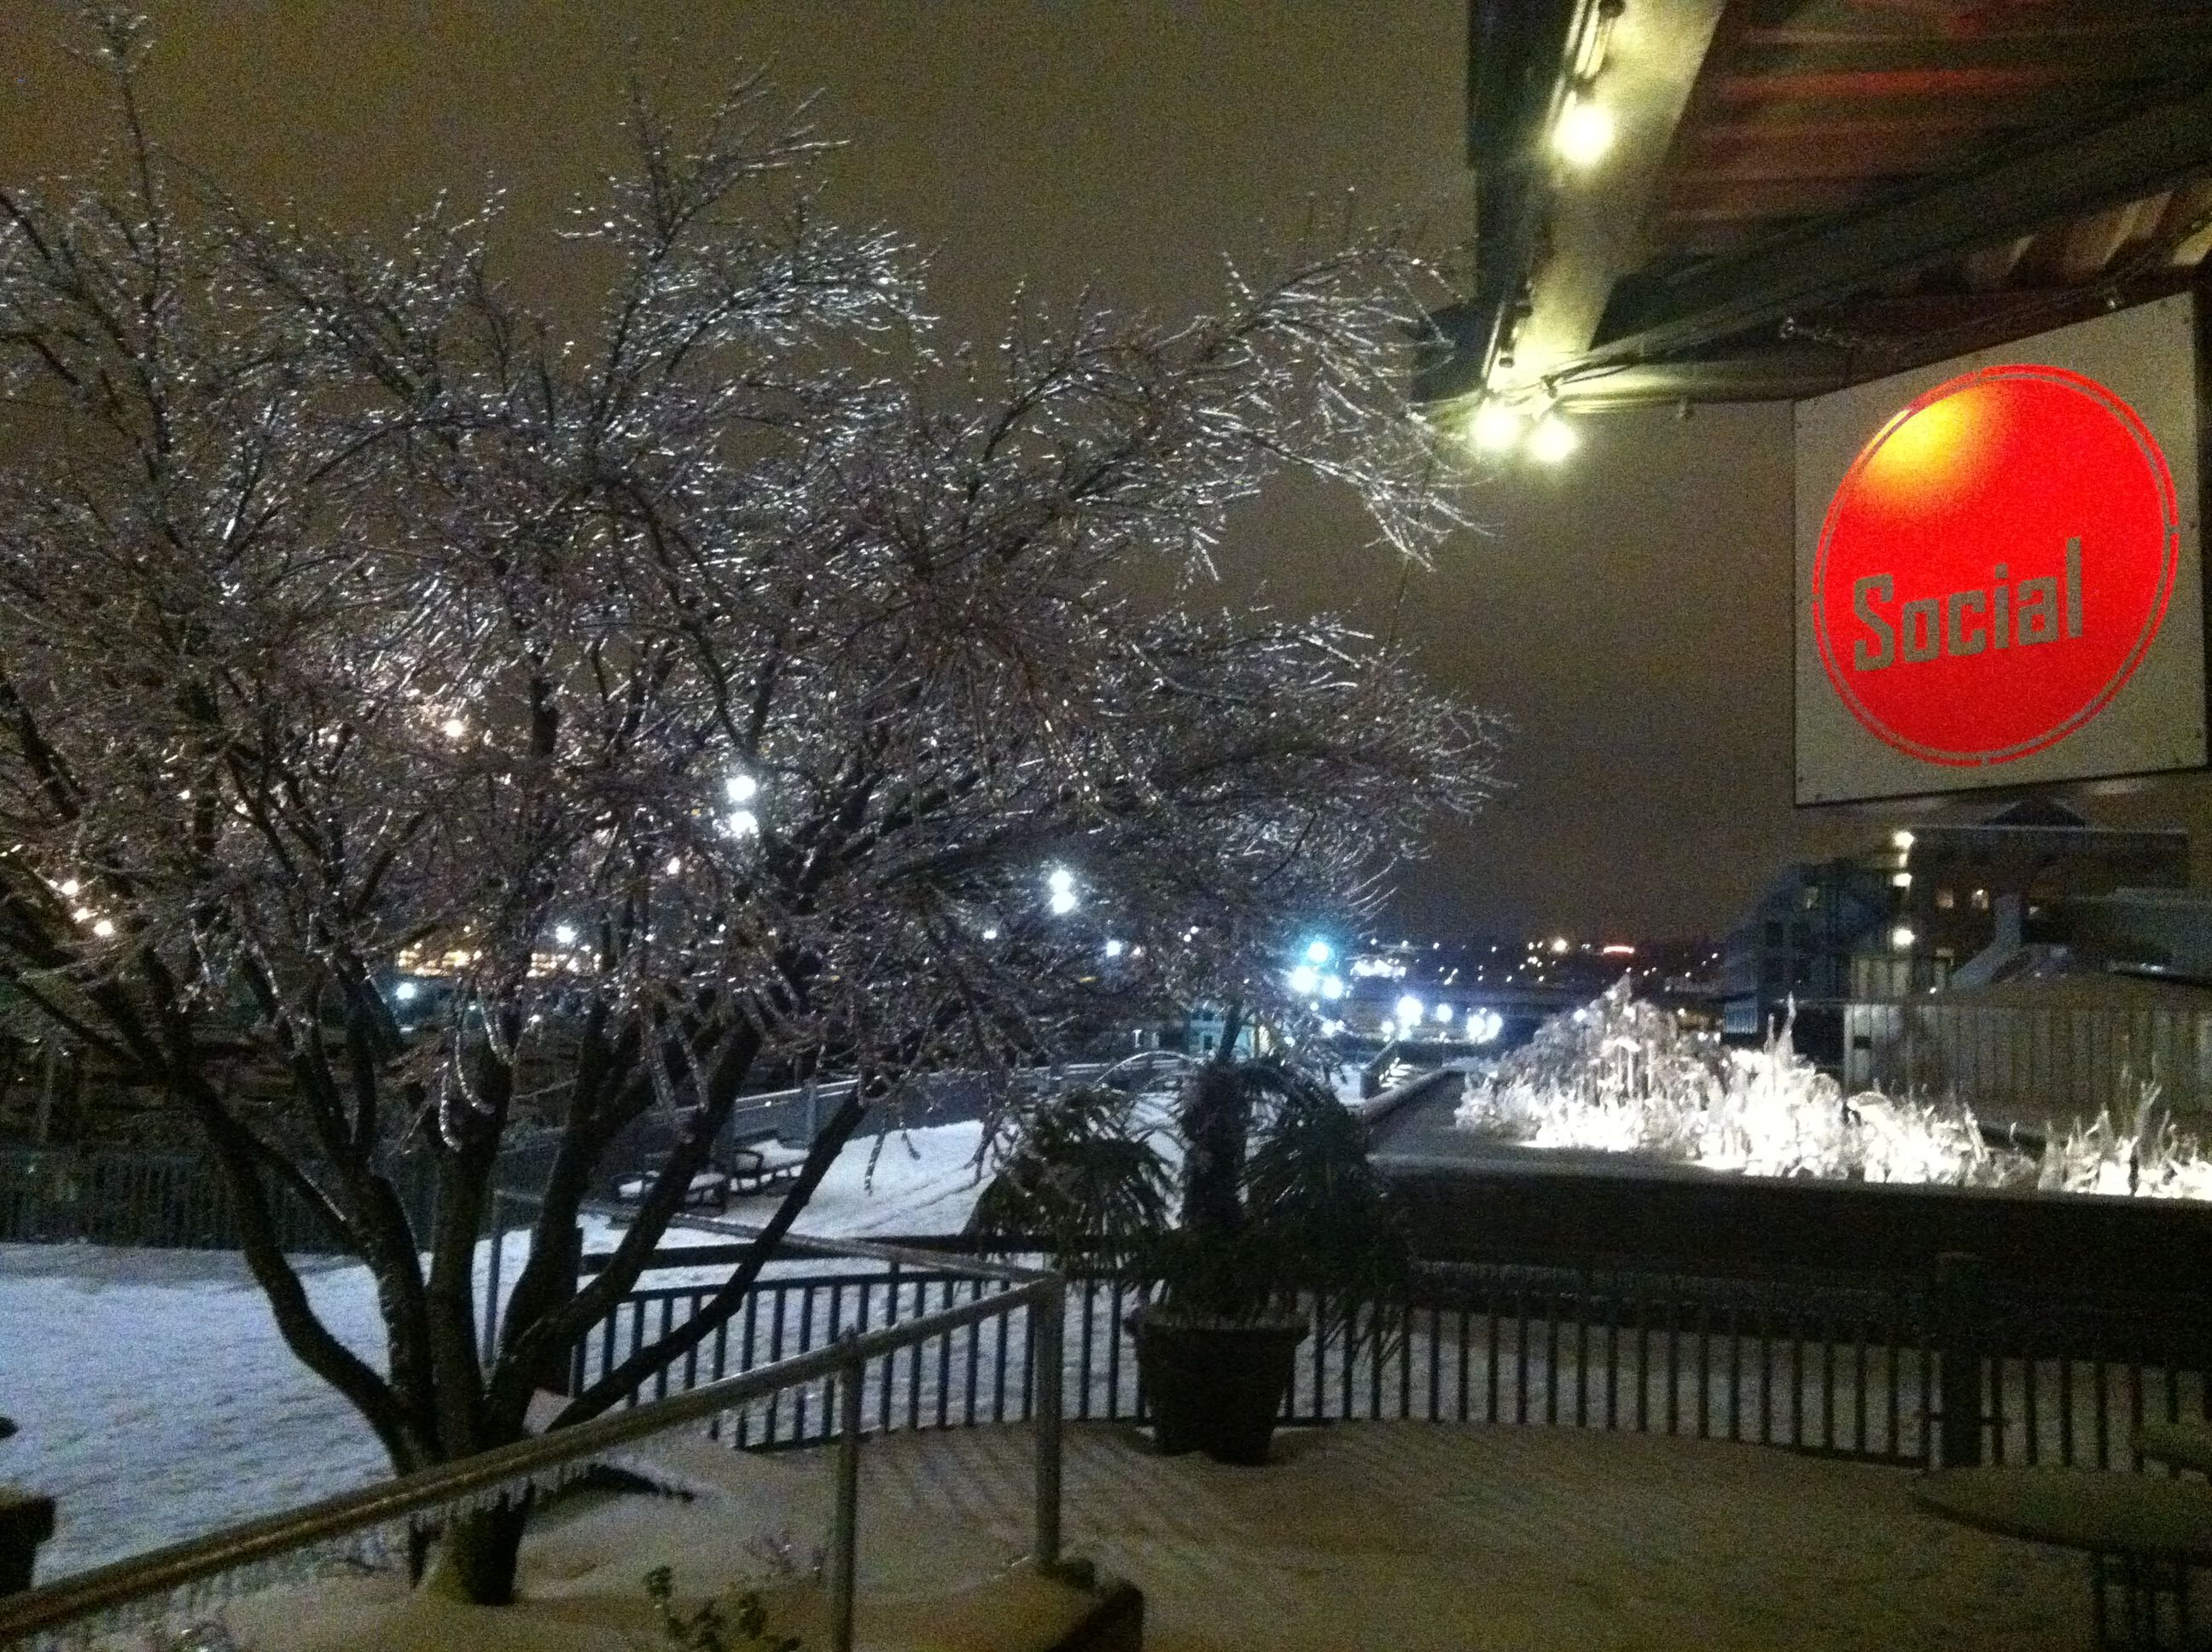 Social with snow the social bar and grill tacoma pinterest